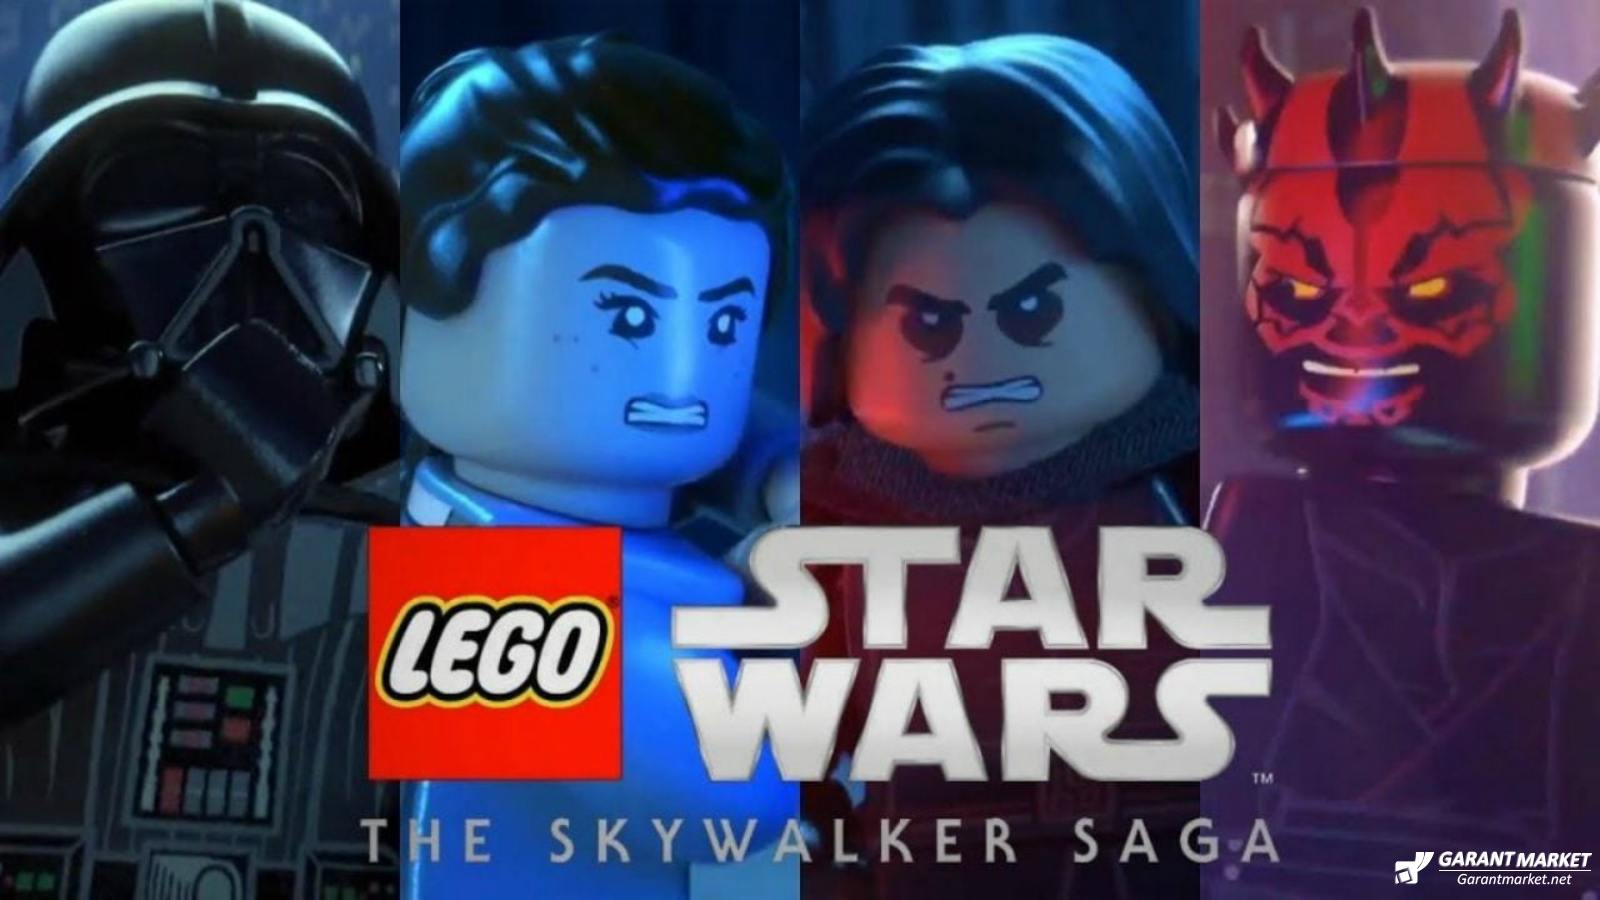 Разработчики TT Games вместе с издательством Warner Bros. Interactive Entertainment представили новую игру LEGO Star Wars: The Skywalker Saga